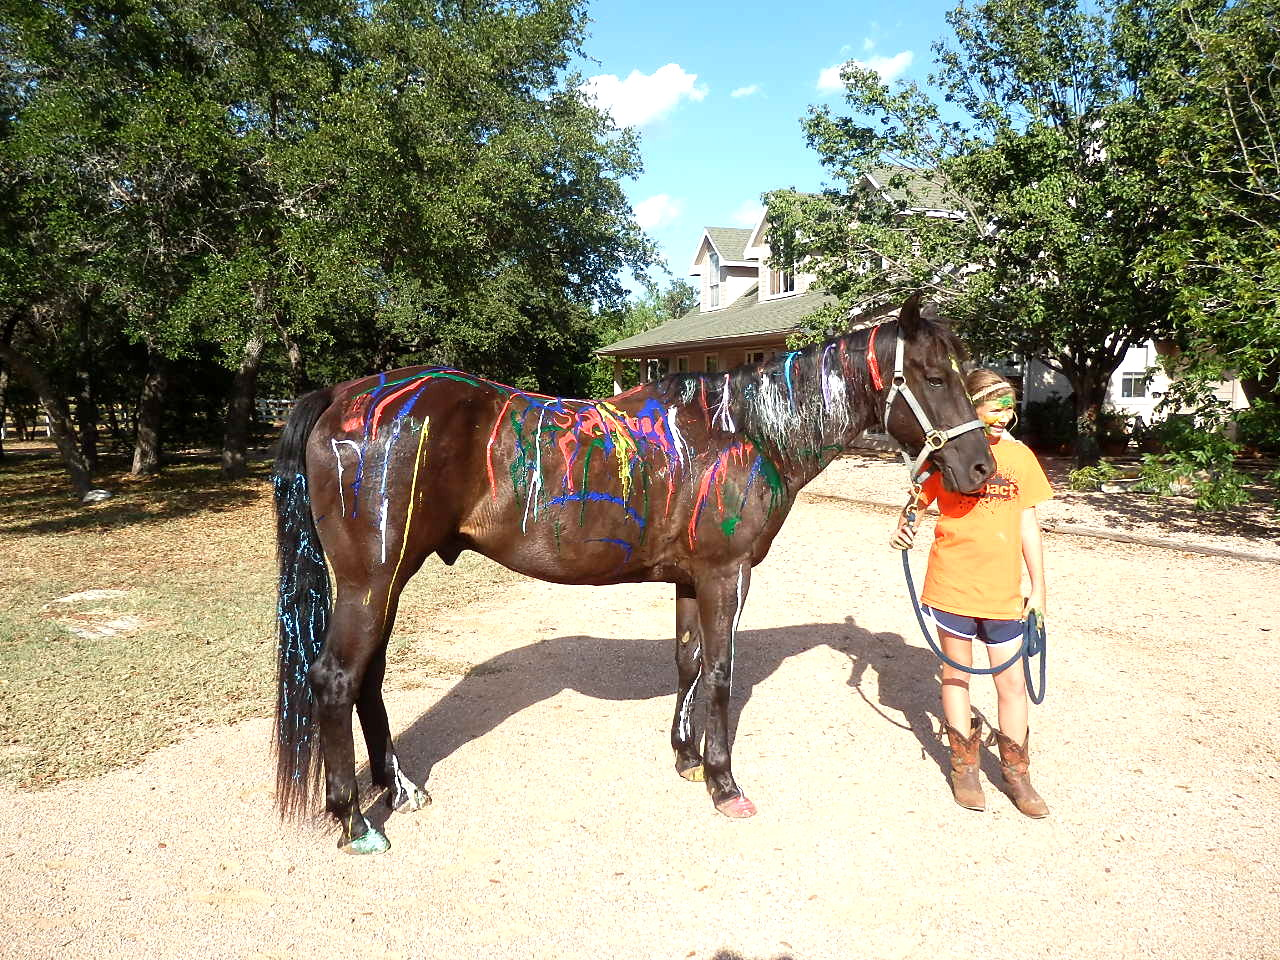 Winner of the Painted Pony contest! Soldier